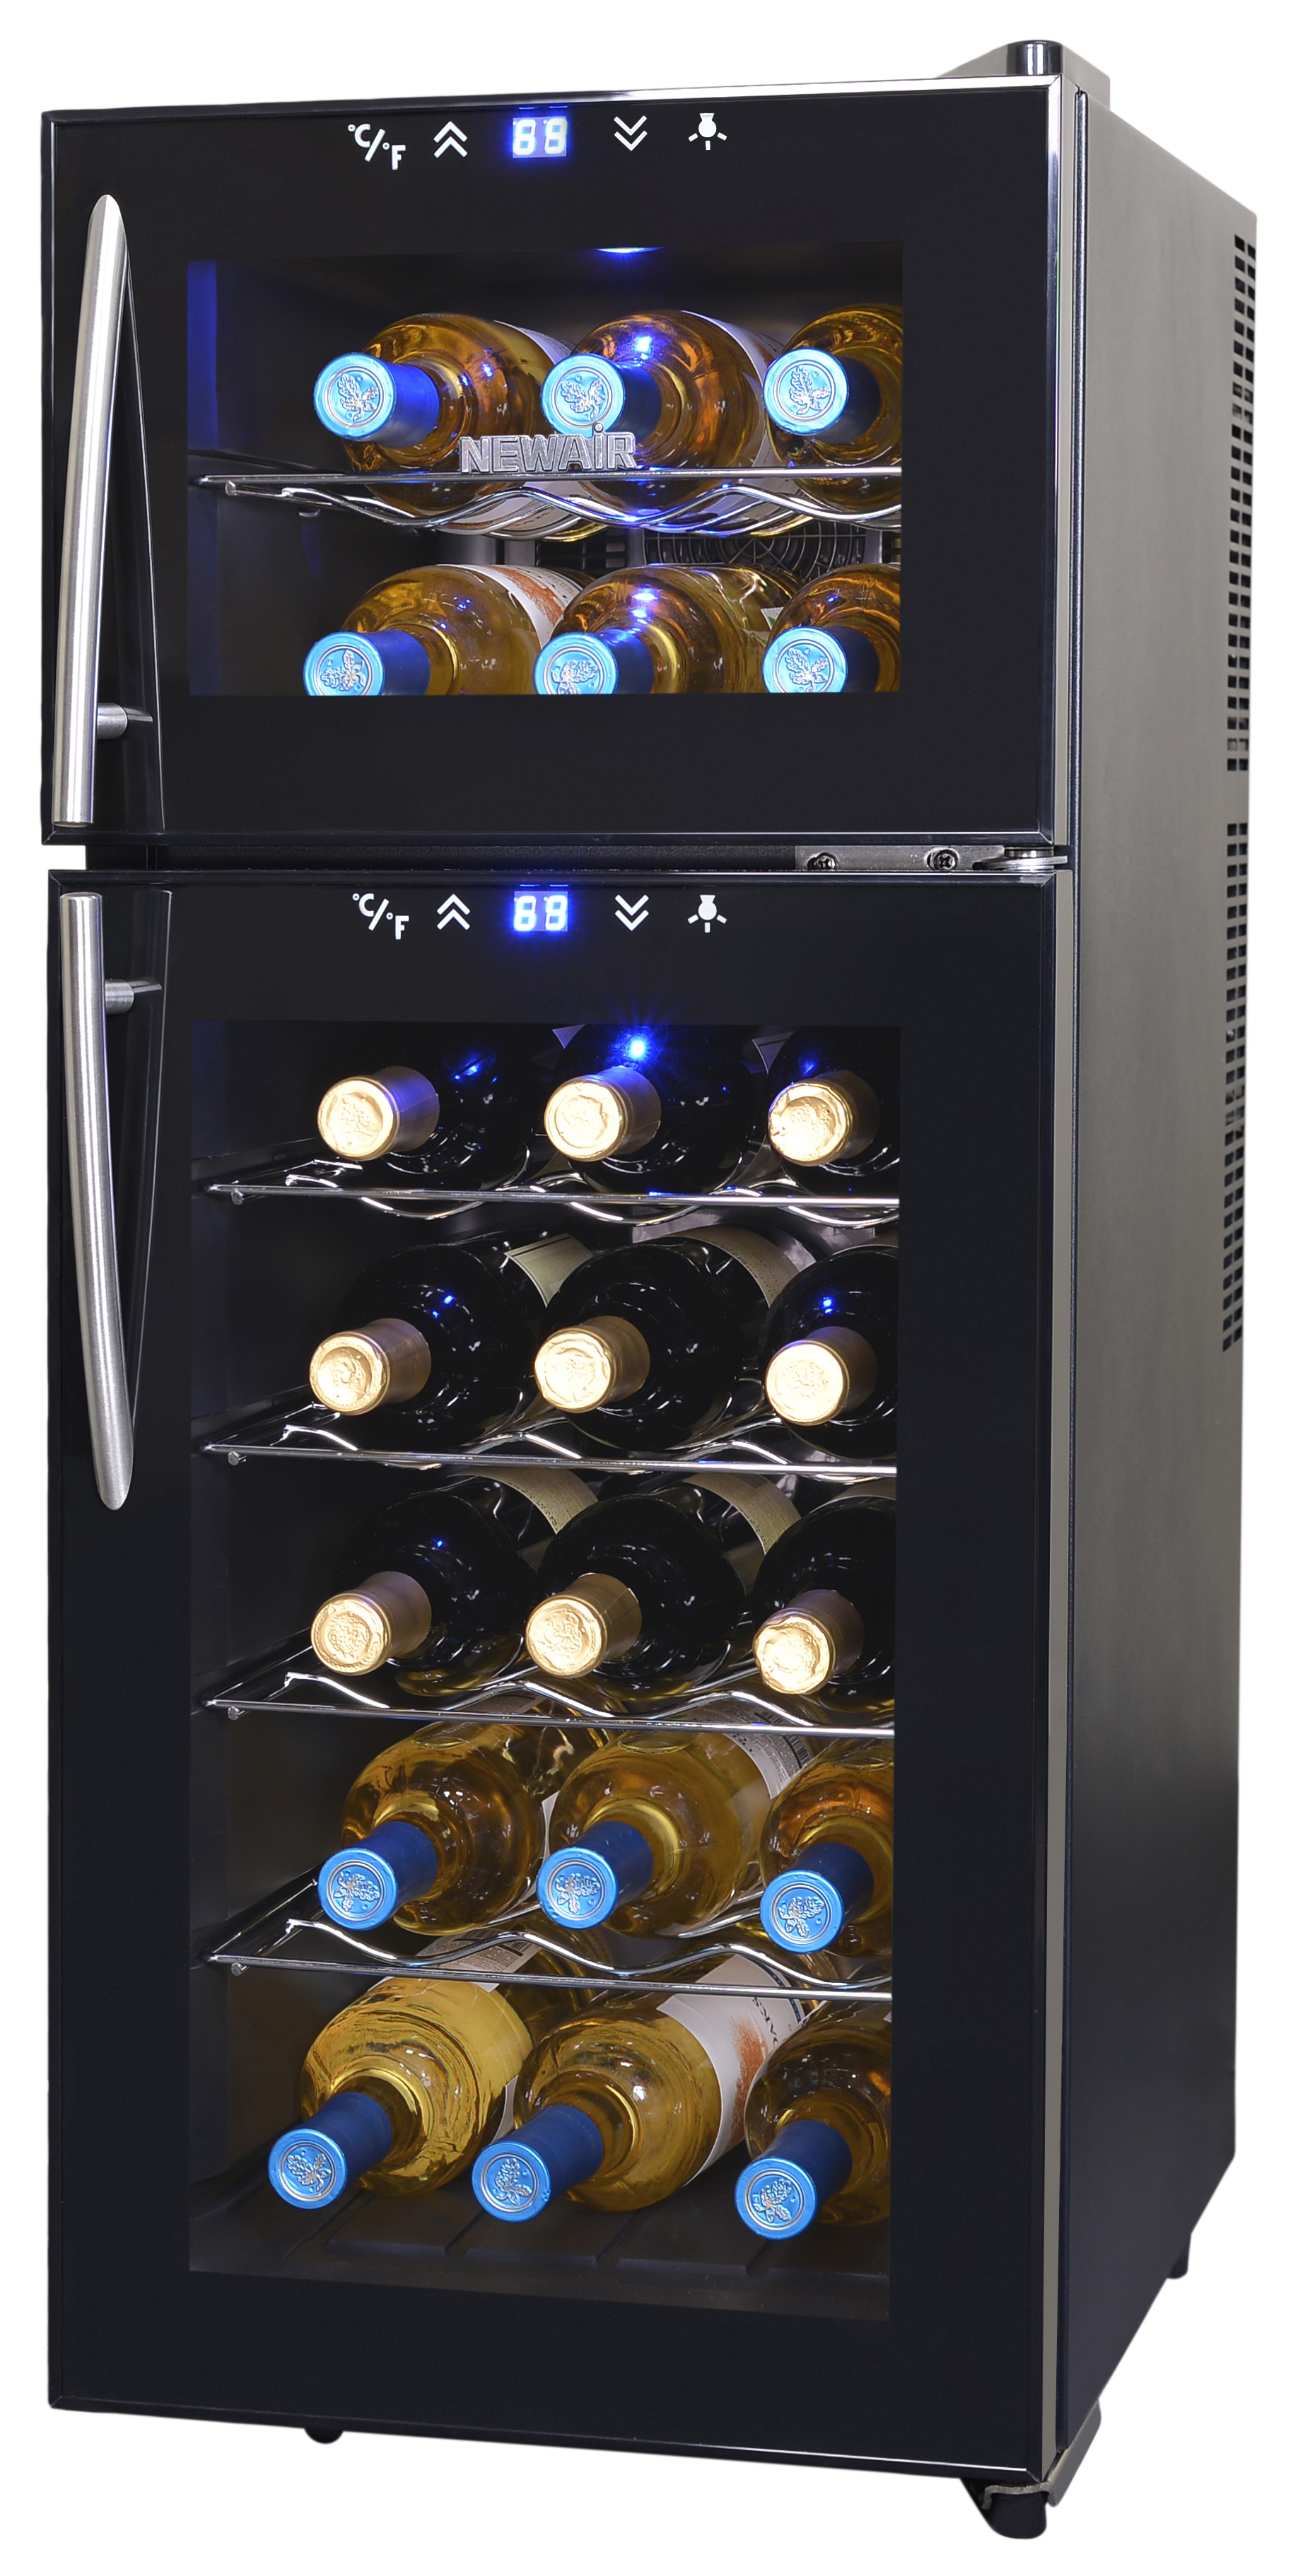 NewAir AW-210ED 21-Bottle Thermoelectric Wine Refrigerator, Black